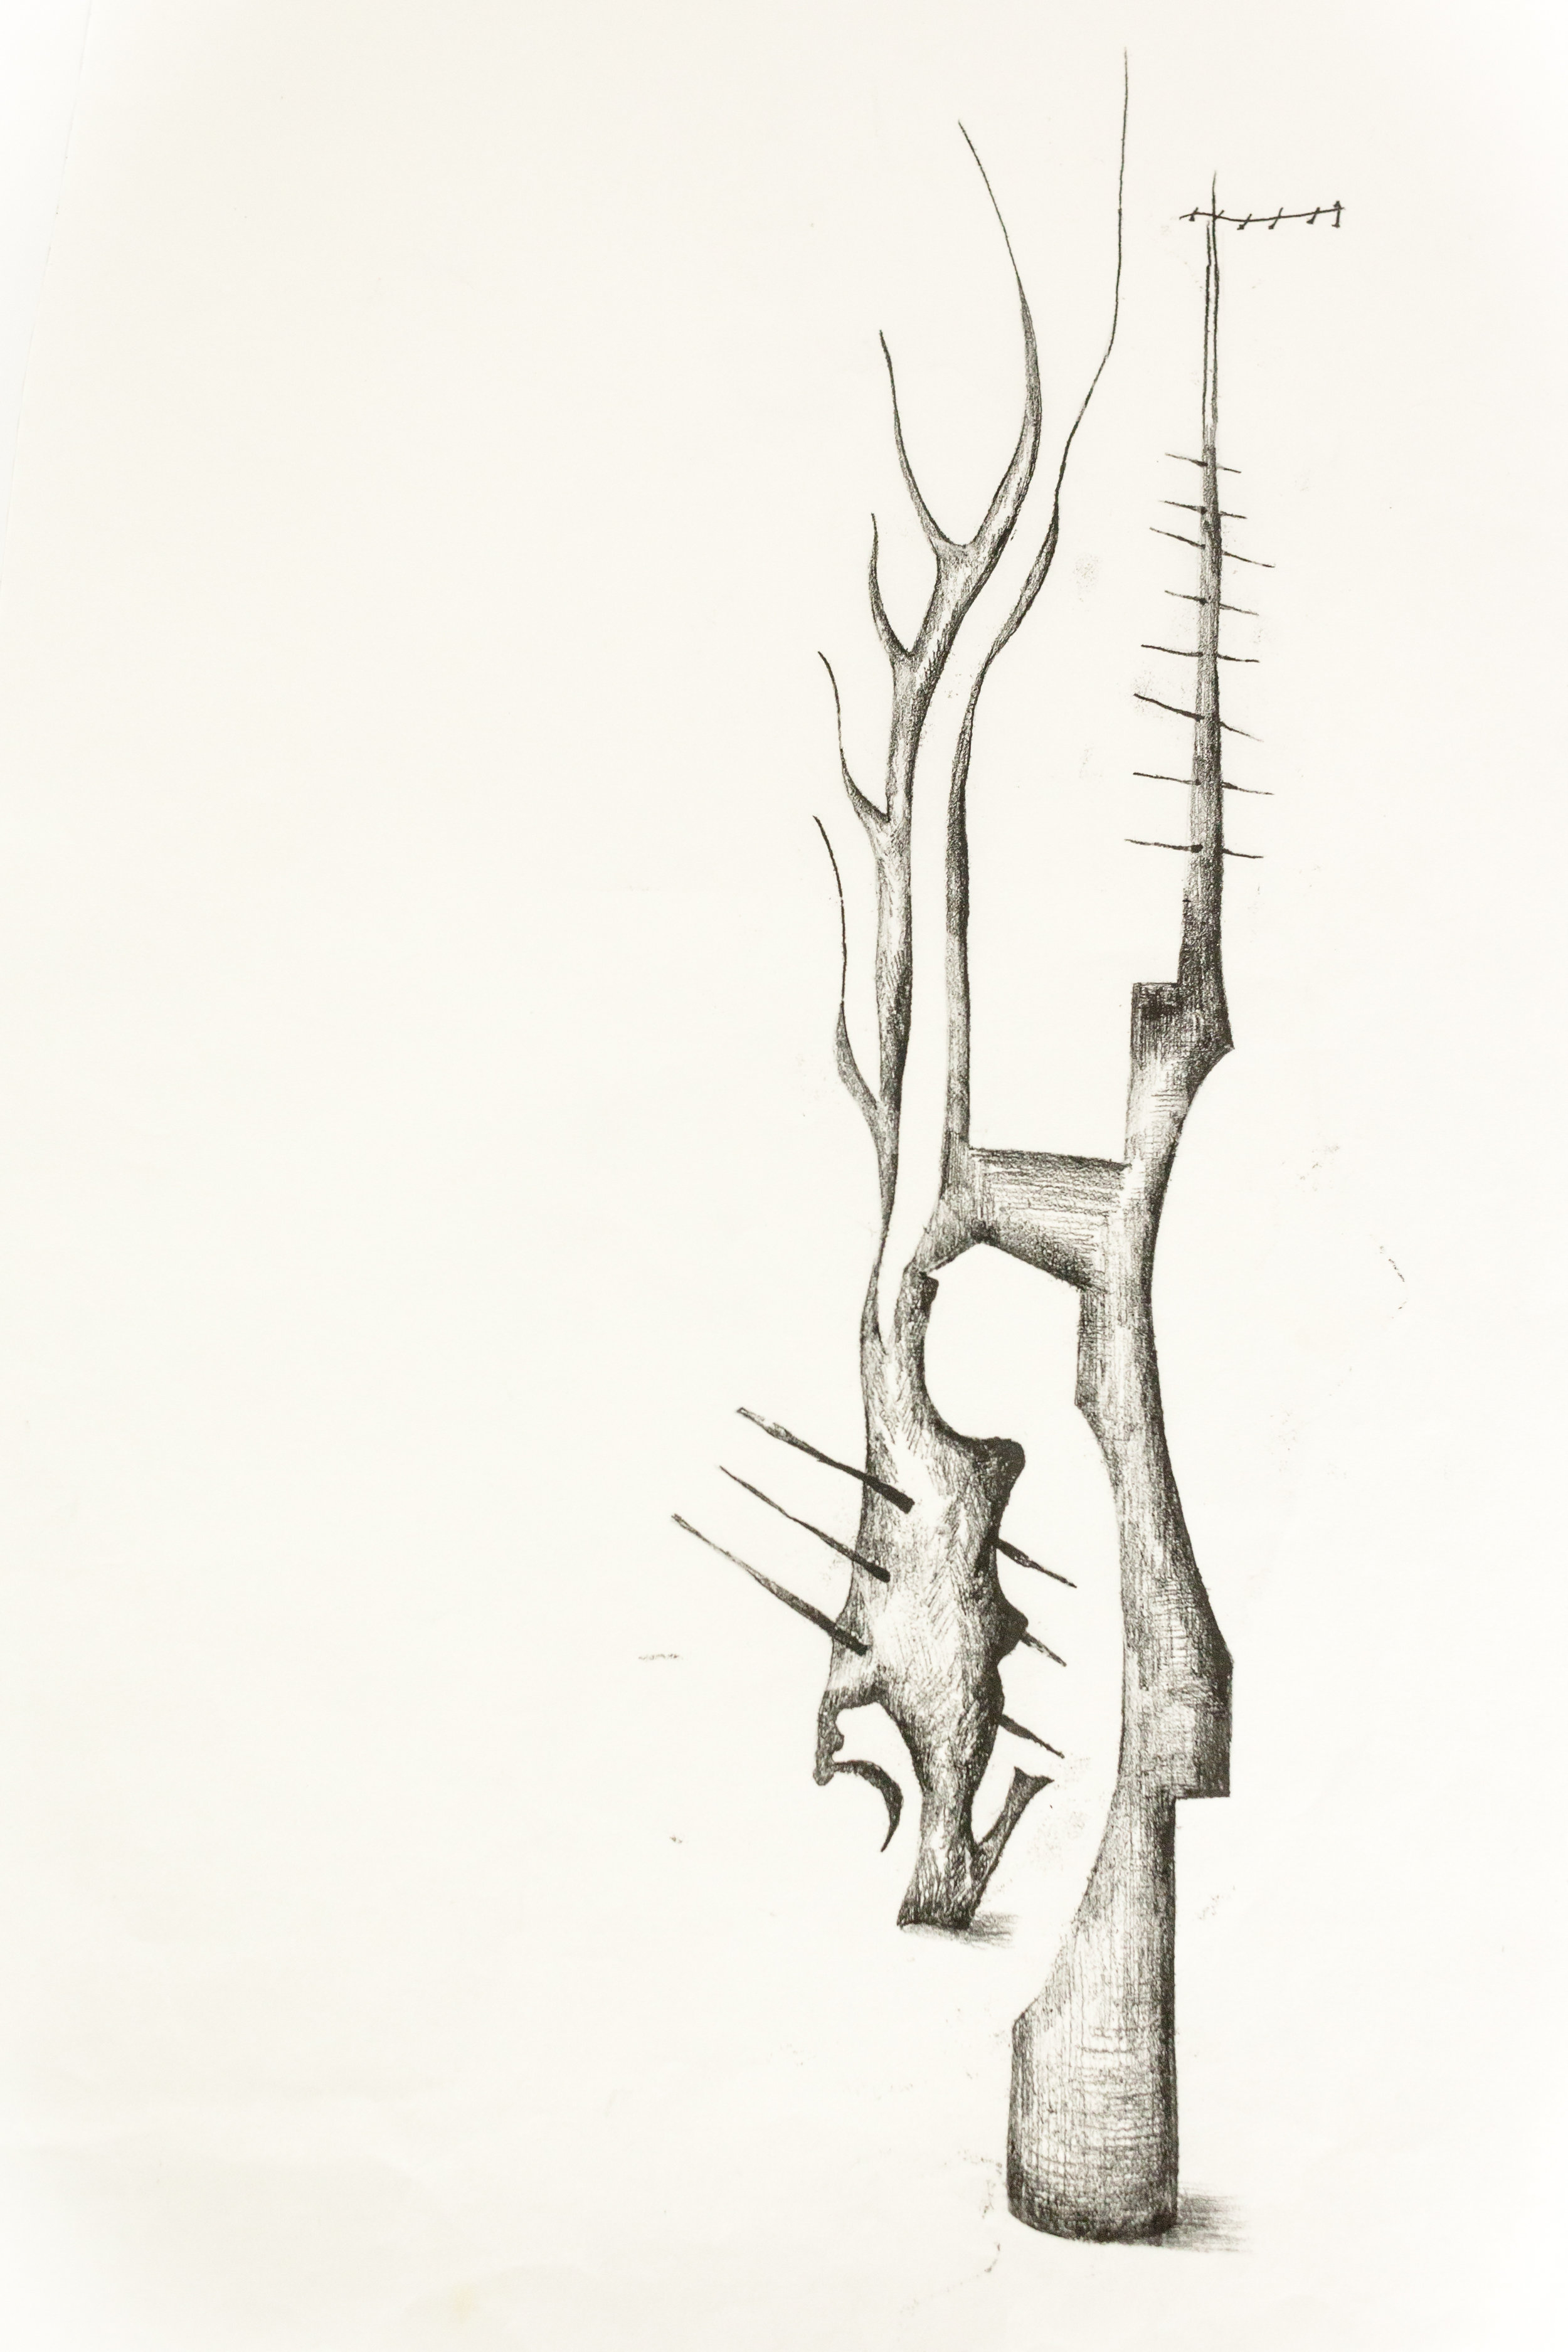 'Untitled Sculpture Drawing viiii'